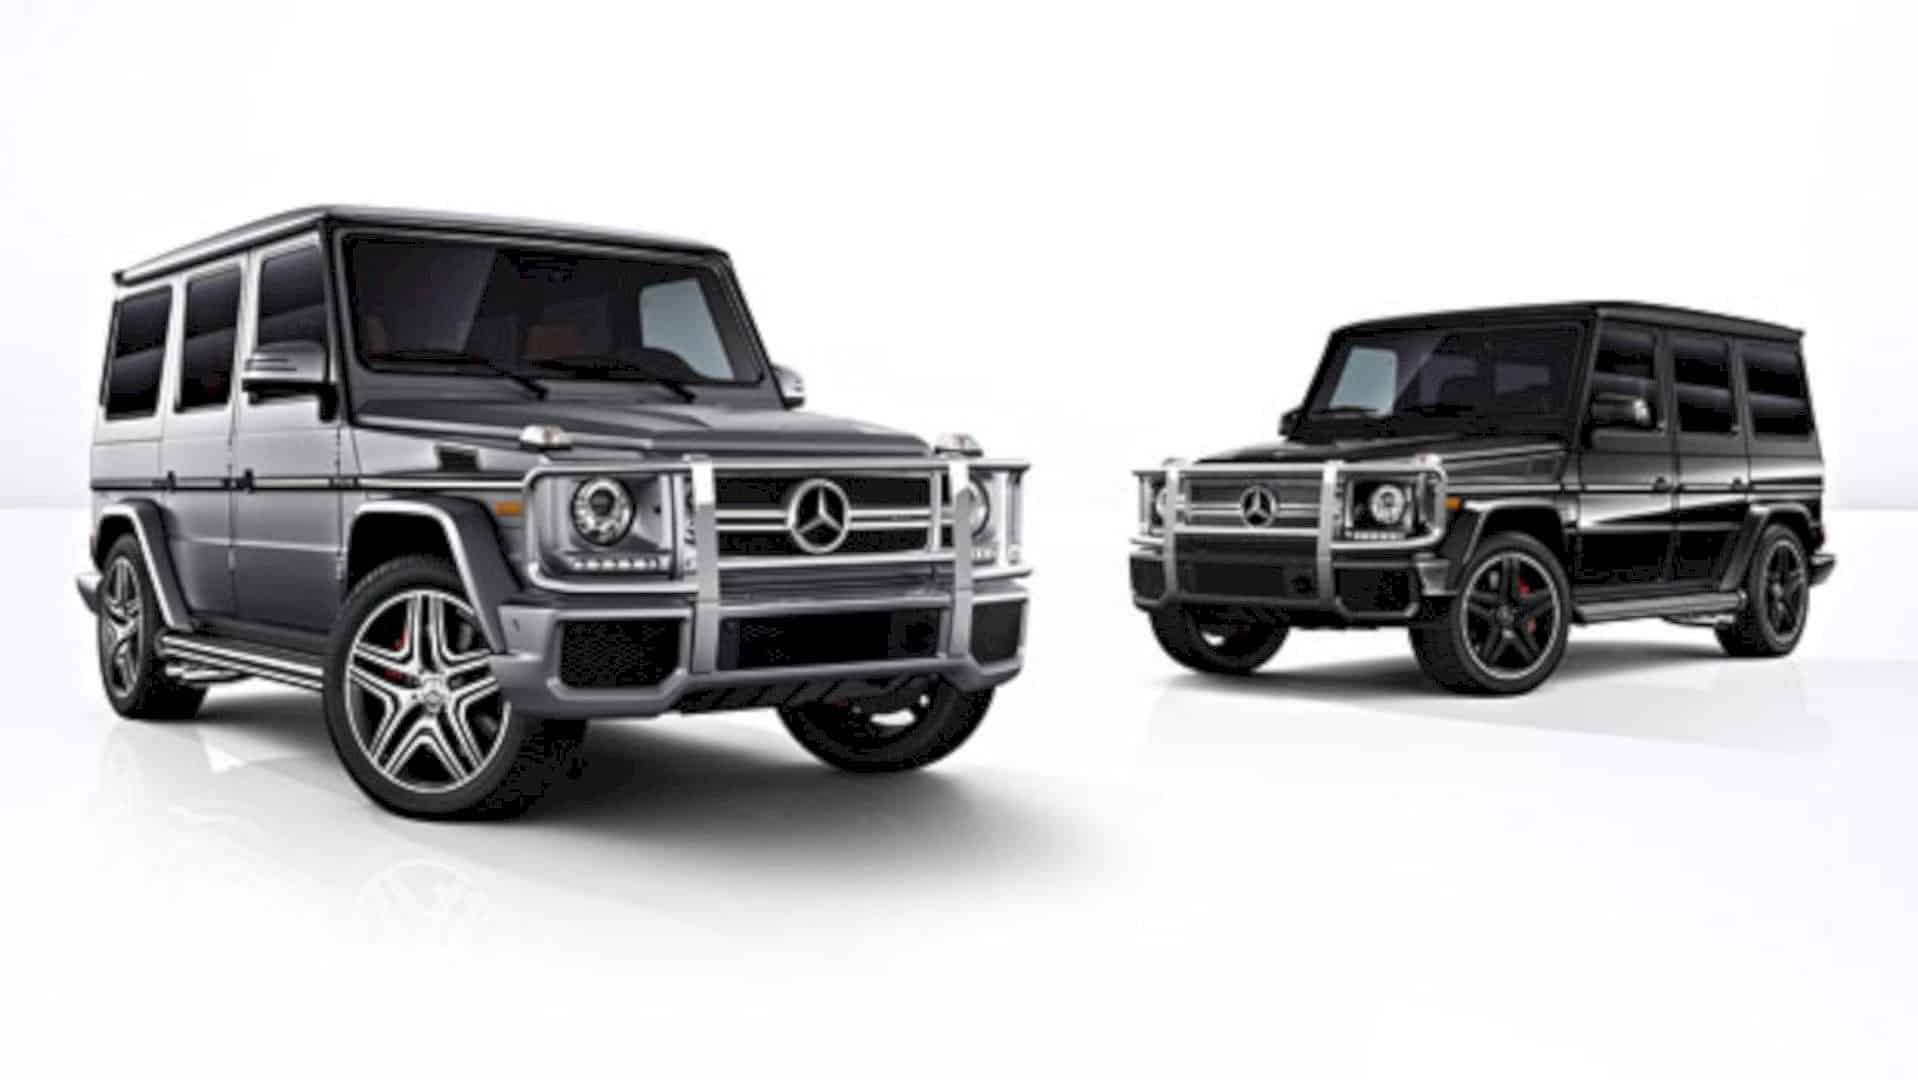 Amg G 65 Suv By Marcedes Benz 2